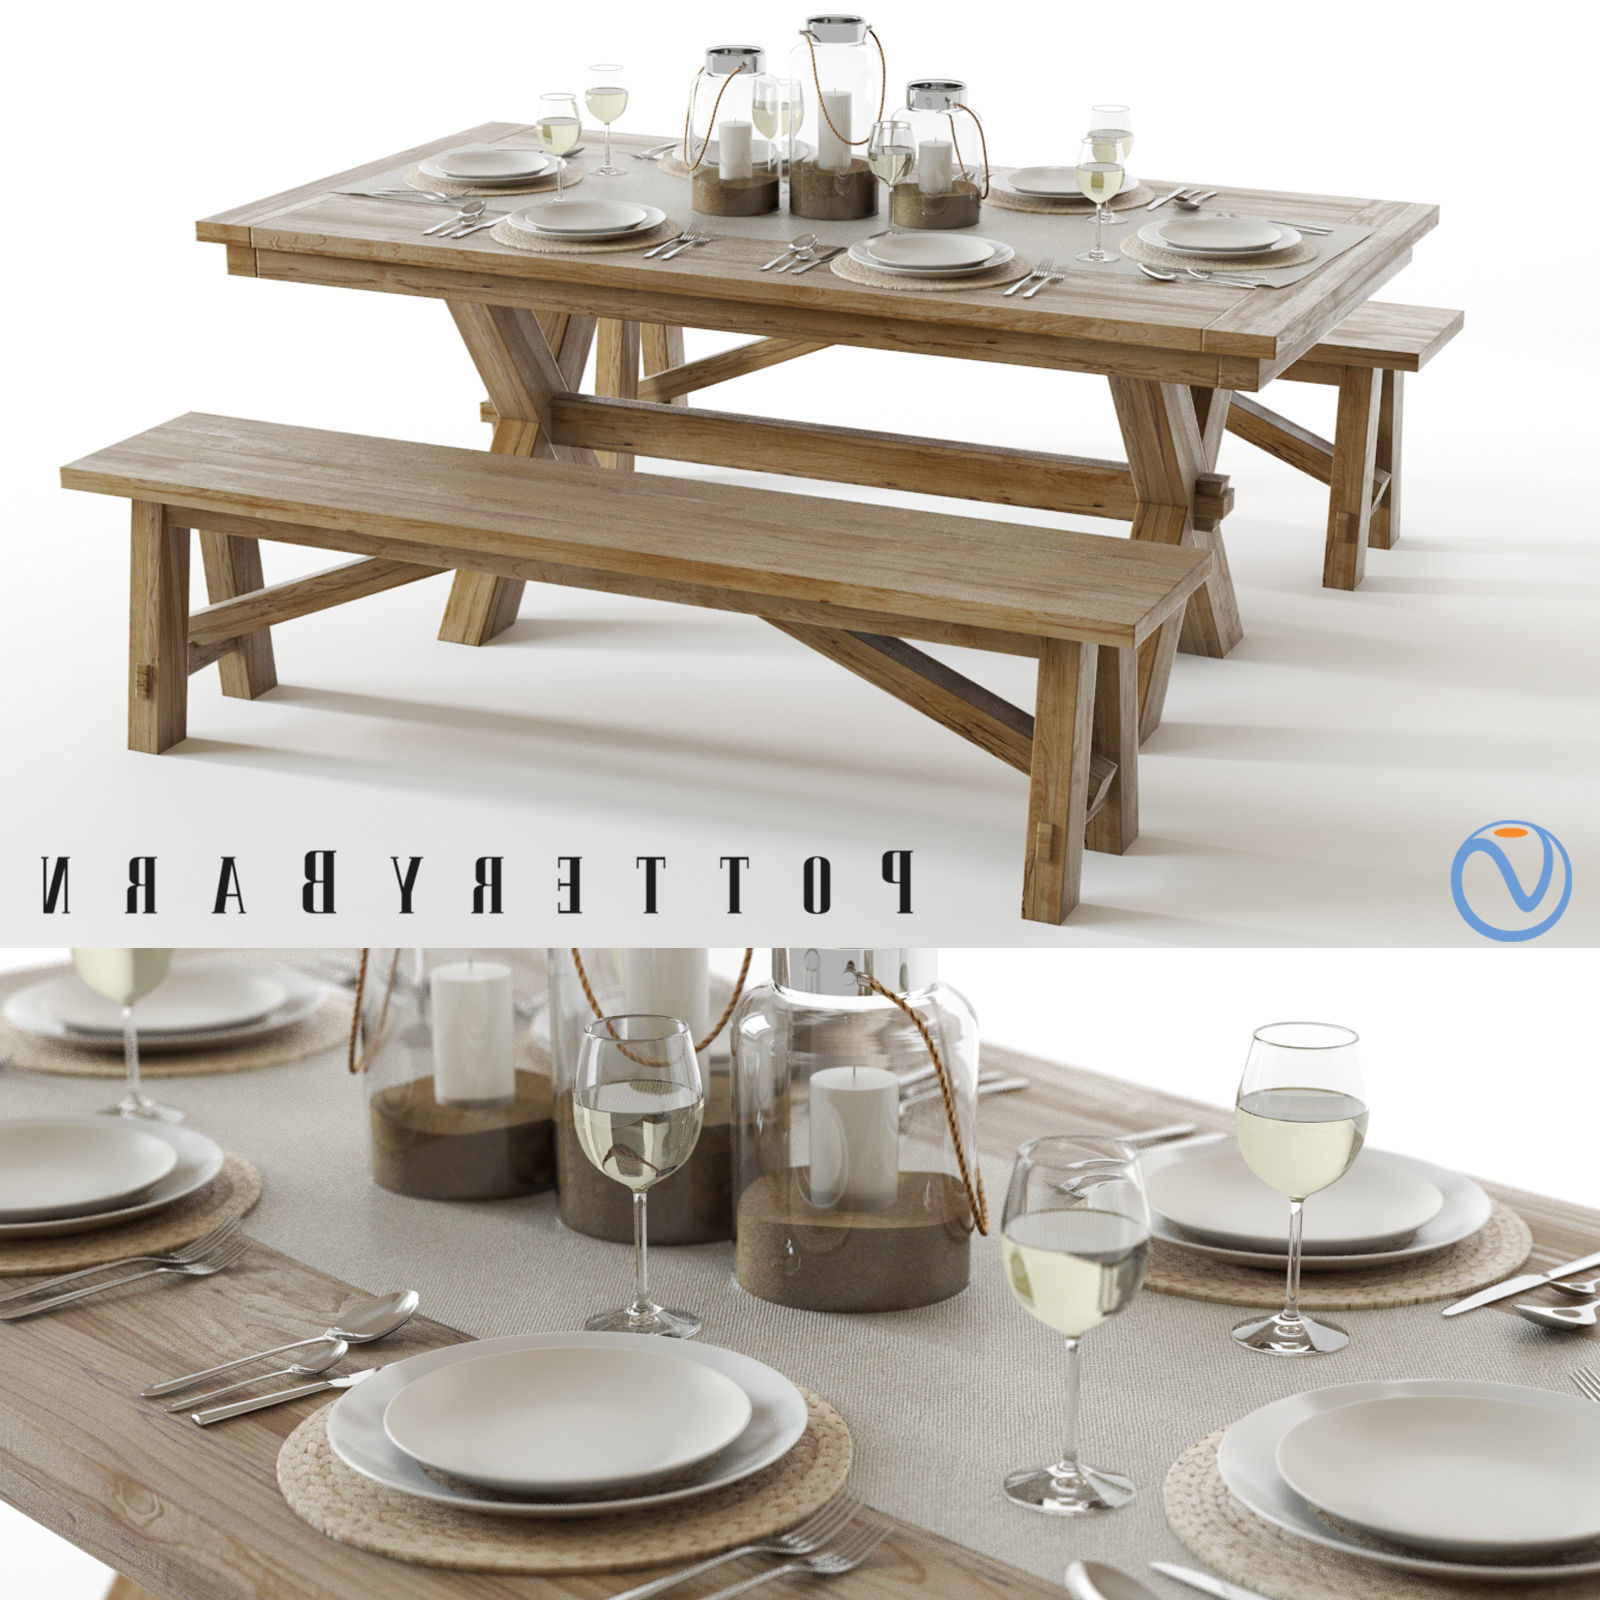 Newest Seadrift Toscana Dining Tables Intended For Pottery Barn Toscana Set (View 10 of 25)